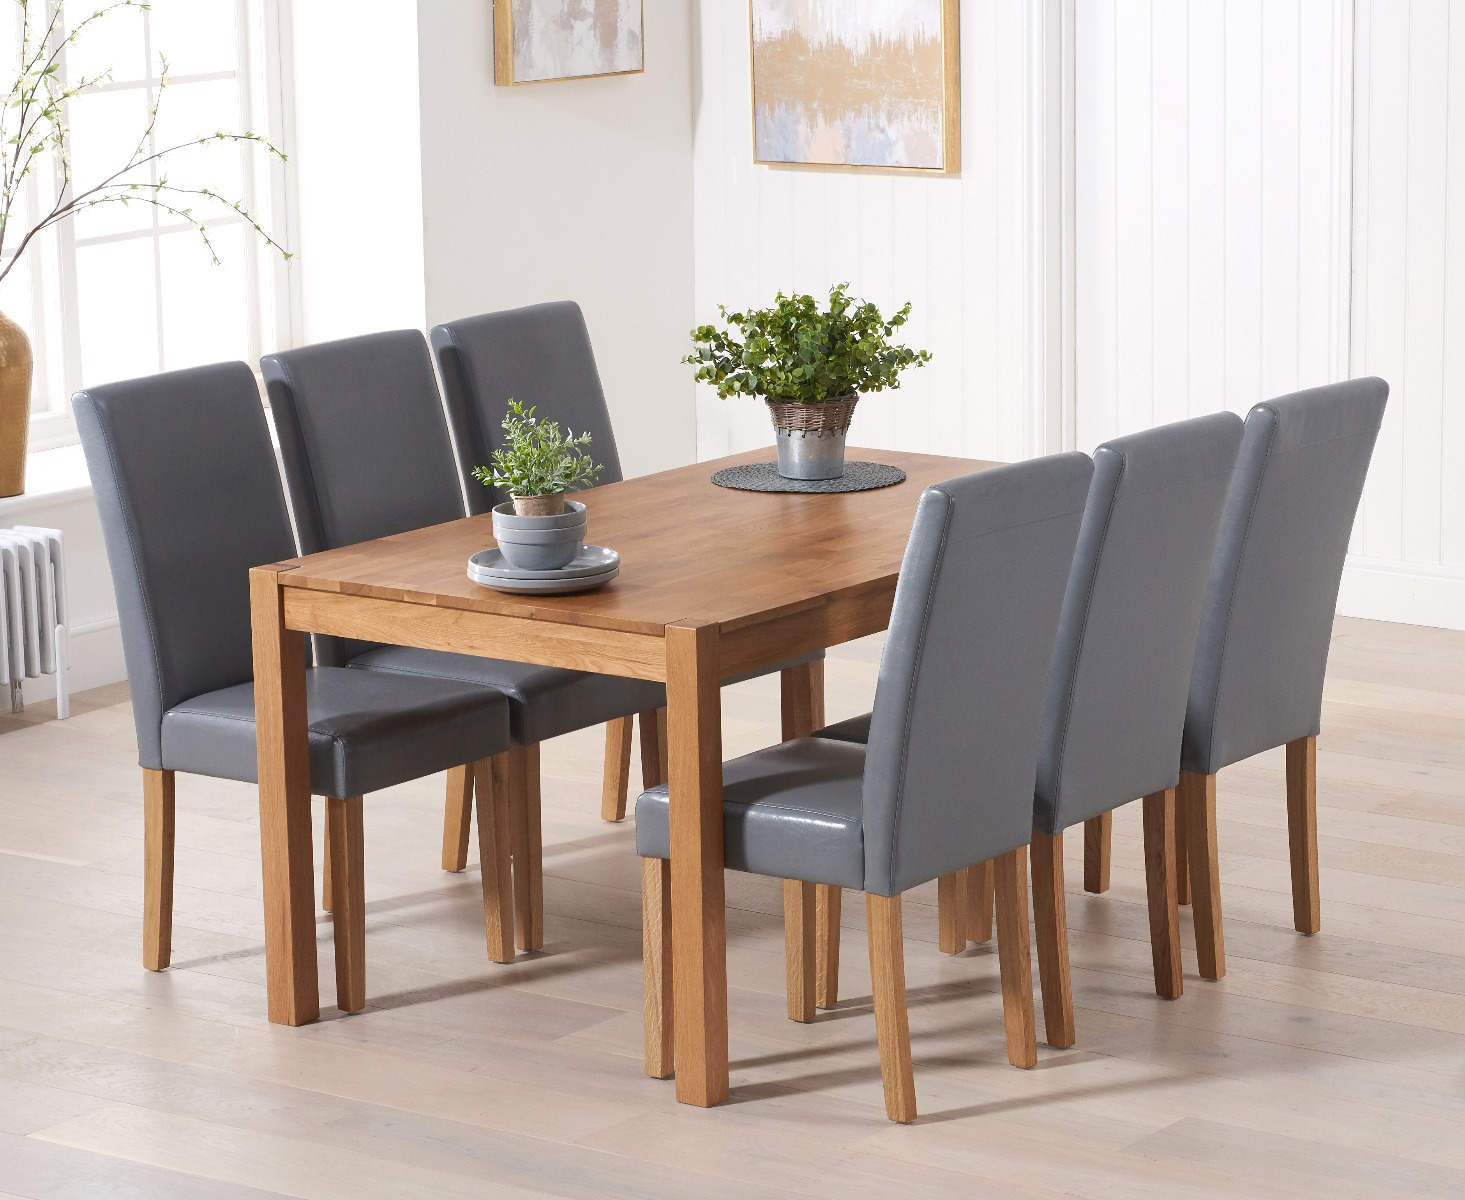 An image of Oxford 150cm Solid Oak Dining Table with Grey Albany Chairs